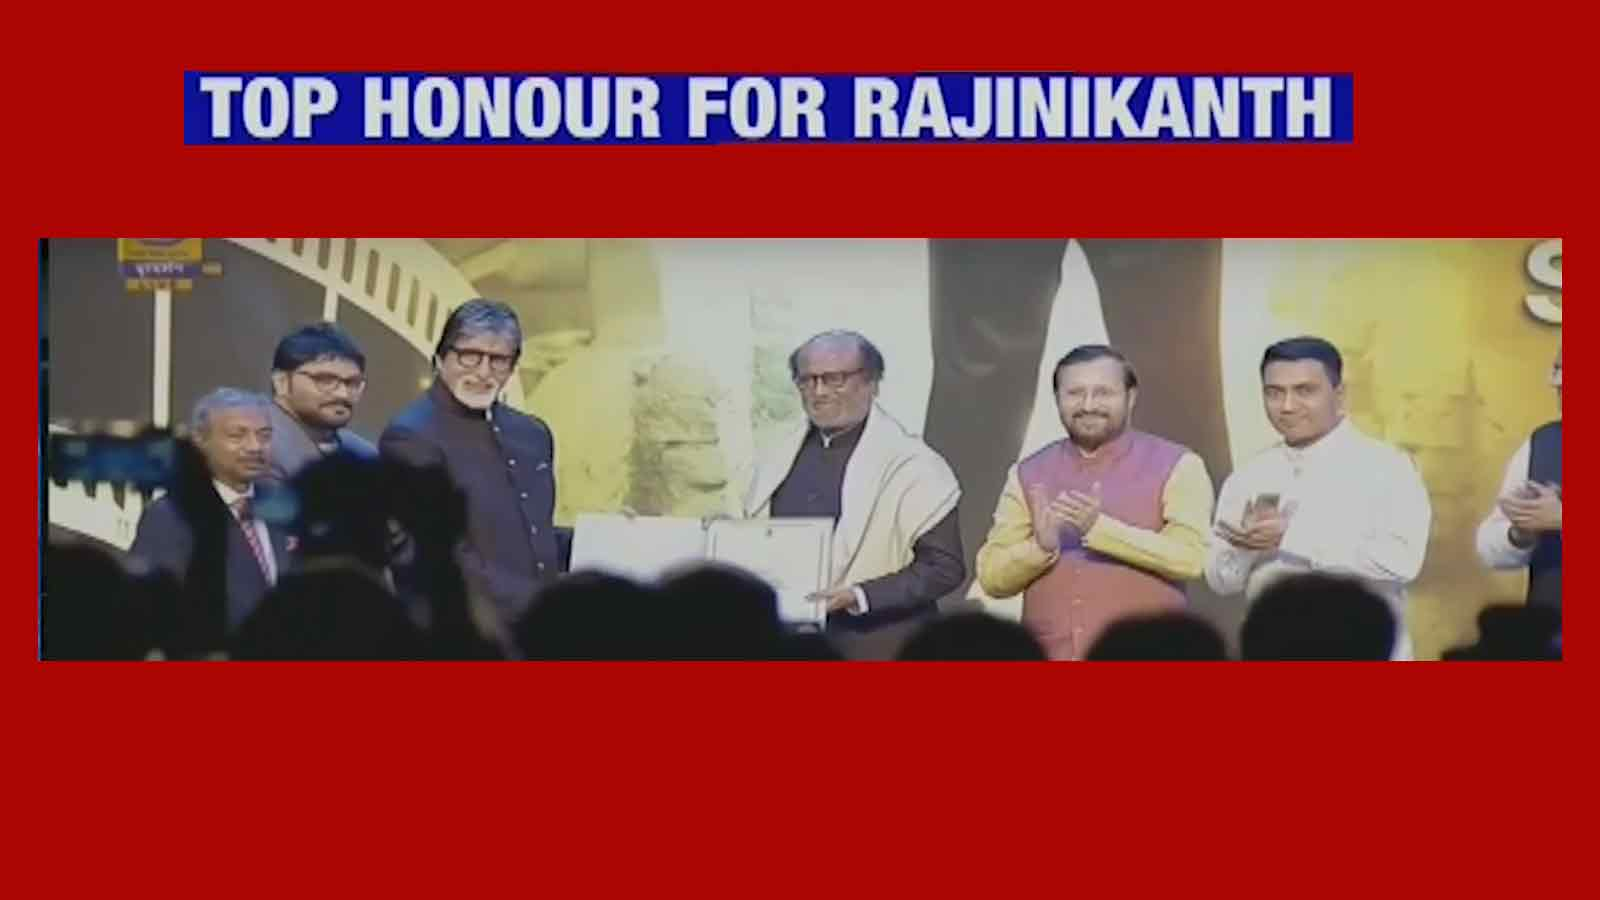 goa-rajinikanth-gets-icon-of-golden-jubilee-award-at-iffi